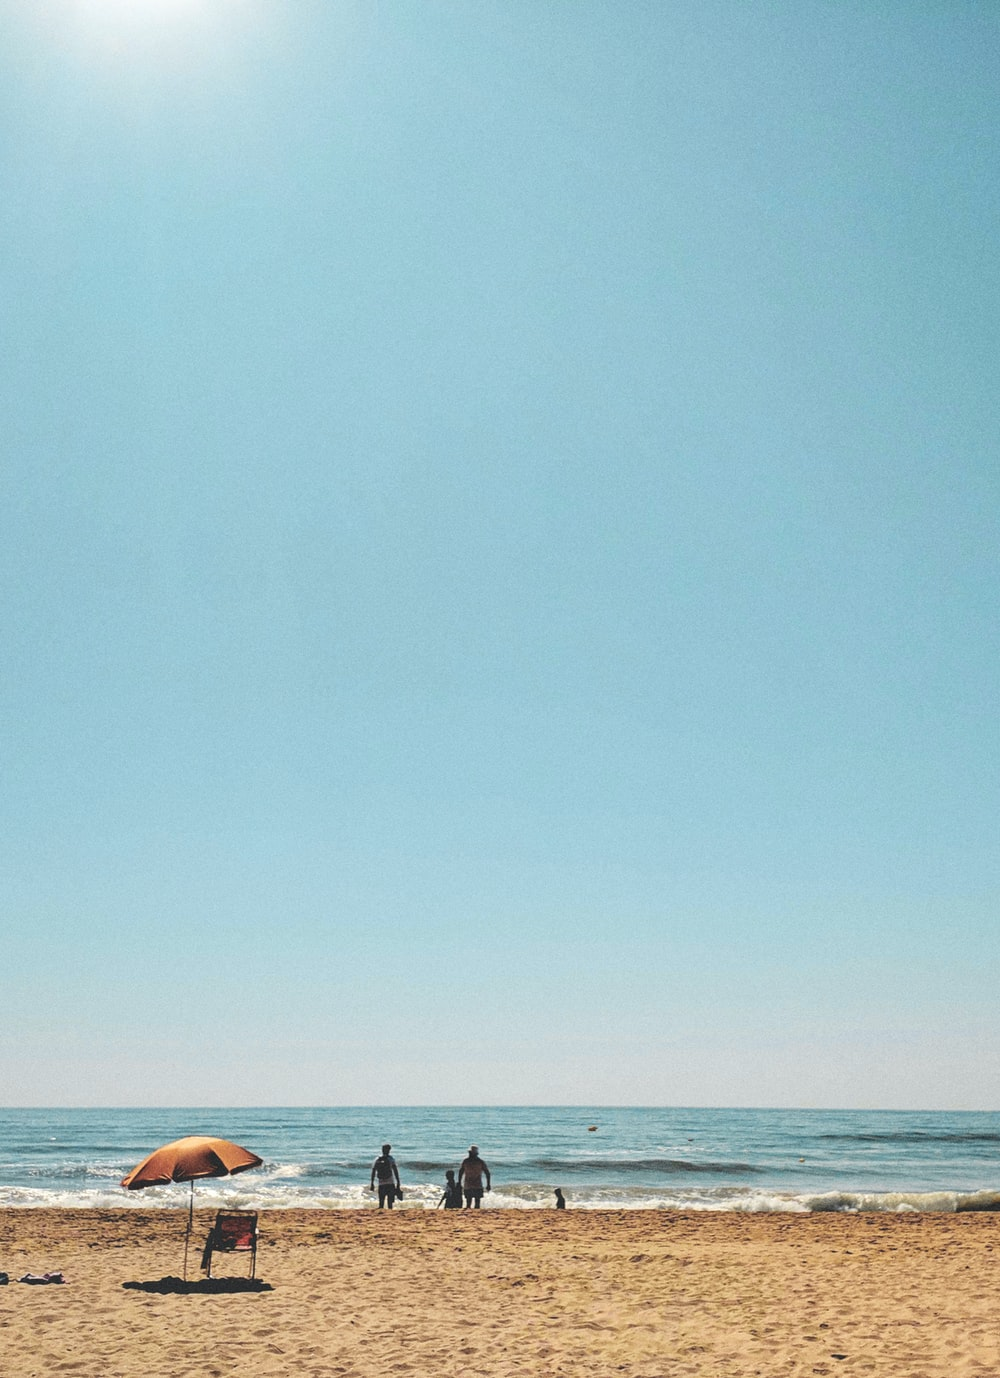 2 person lying on beach during daytime